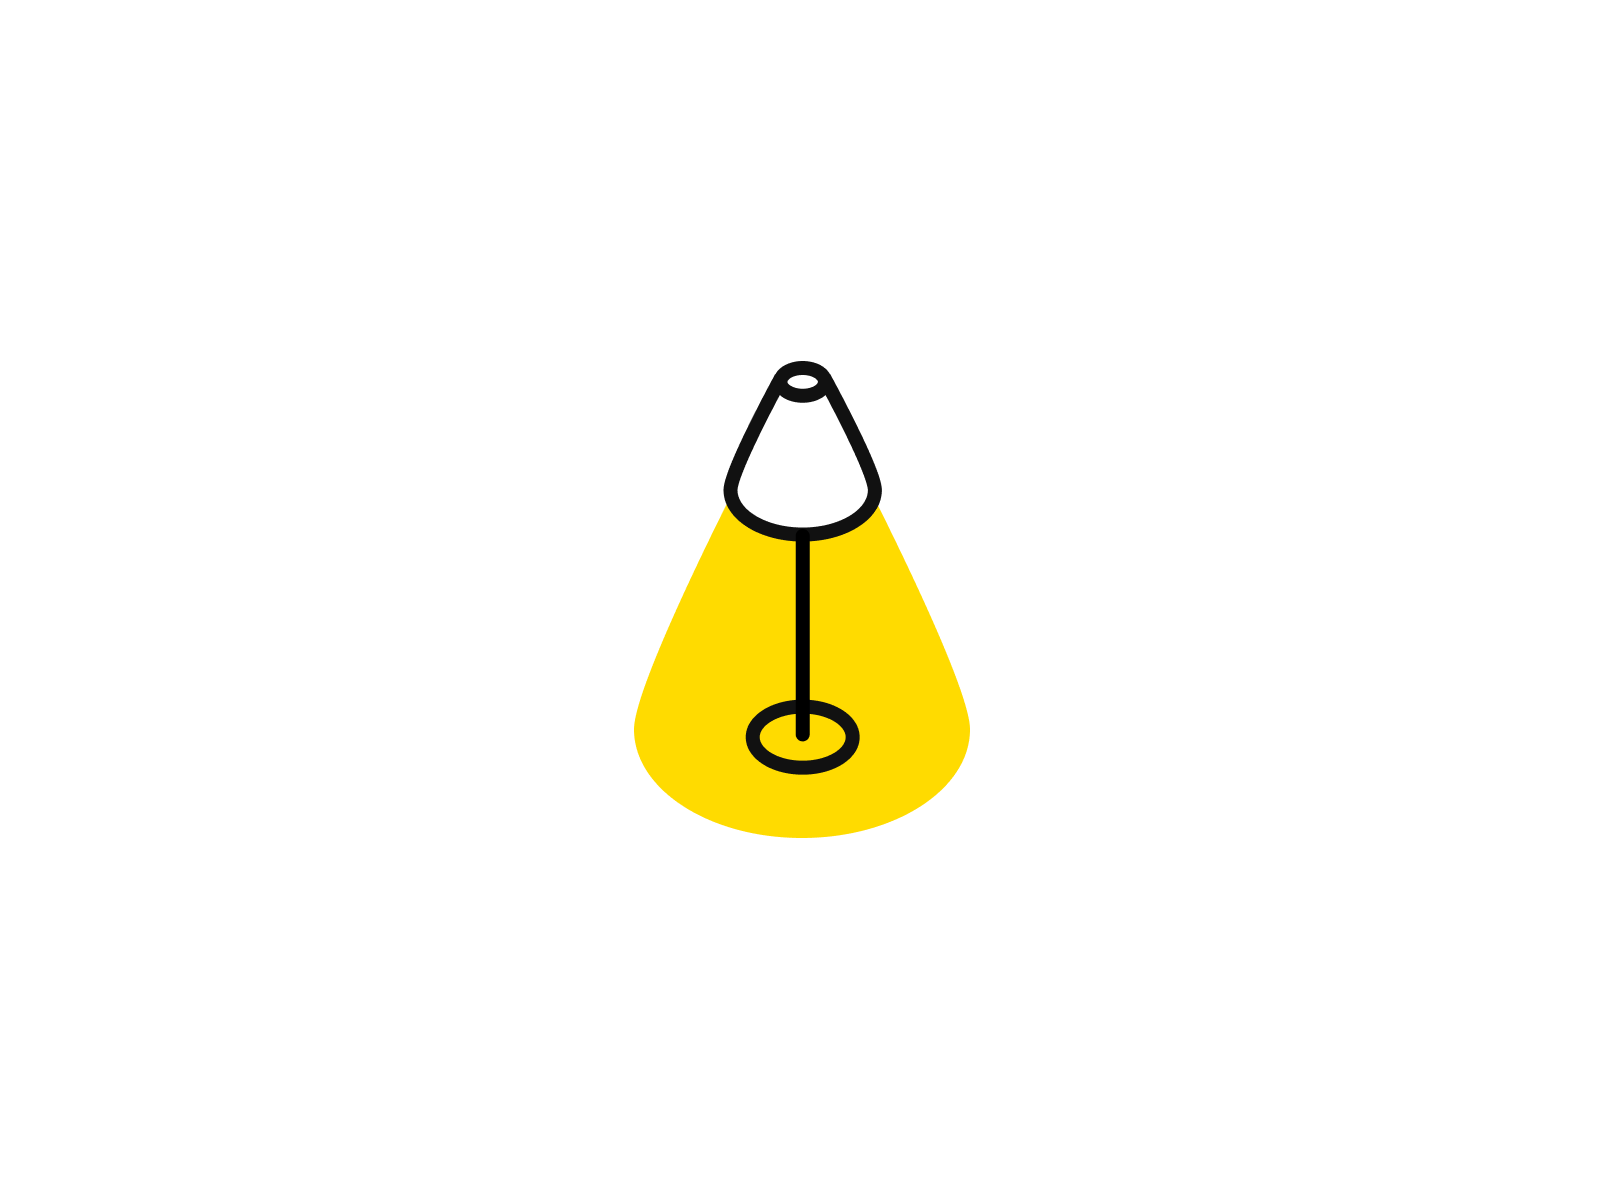 A simple little lamp illustration for an IKEA project.